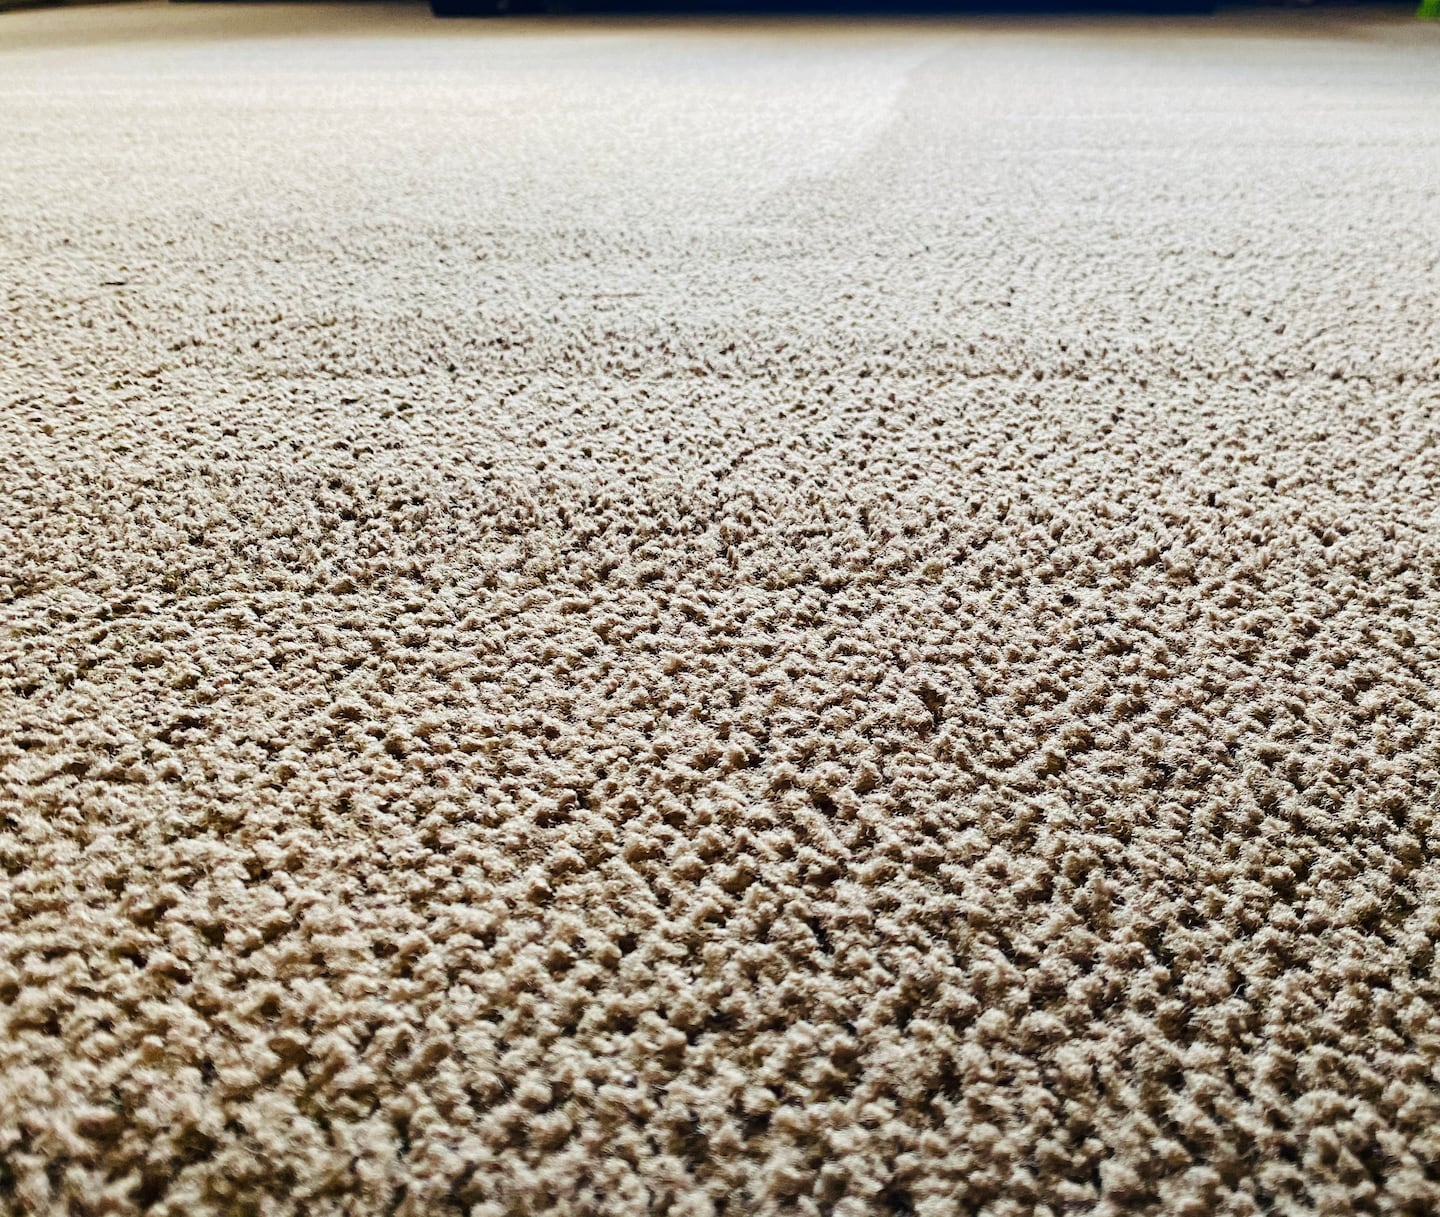 Zoom Dry Carpet Cleaning LLC